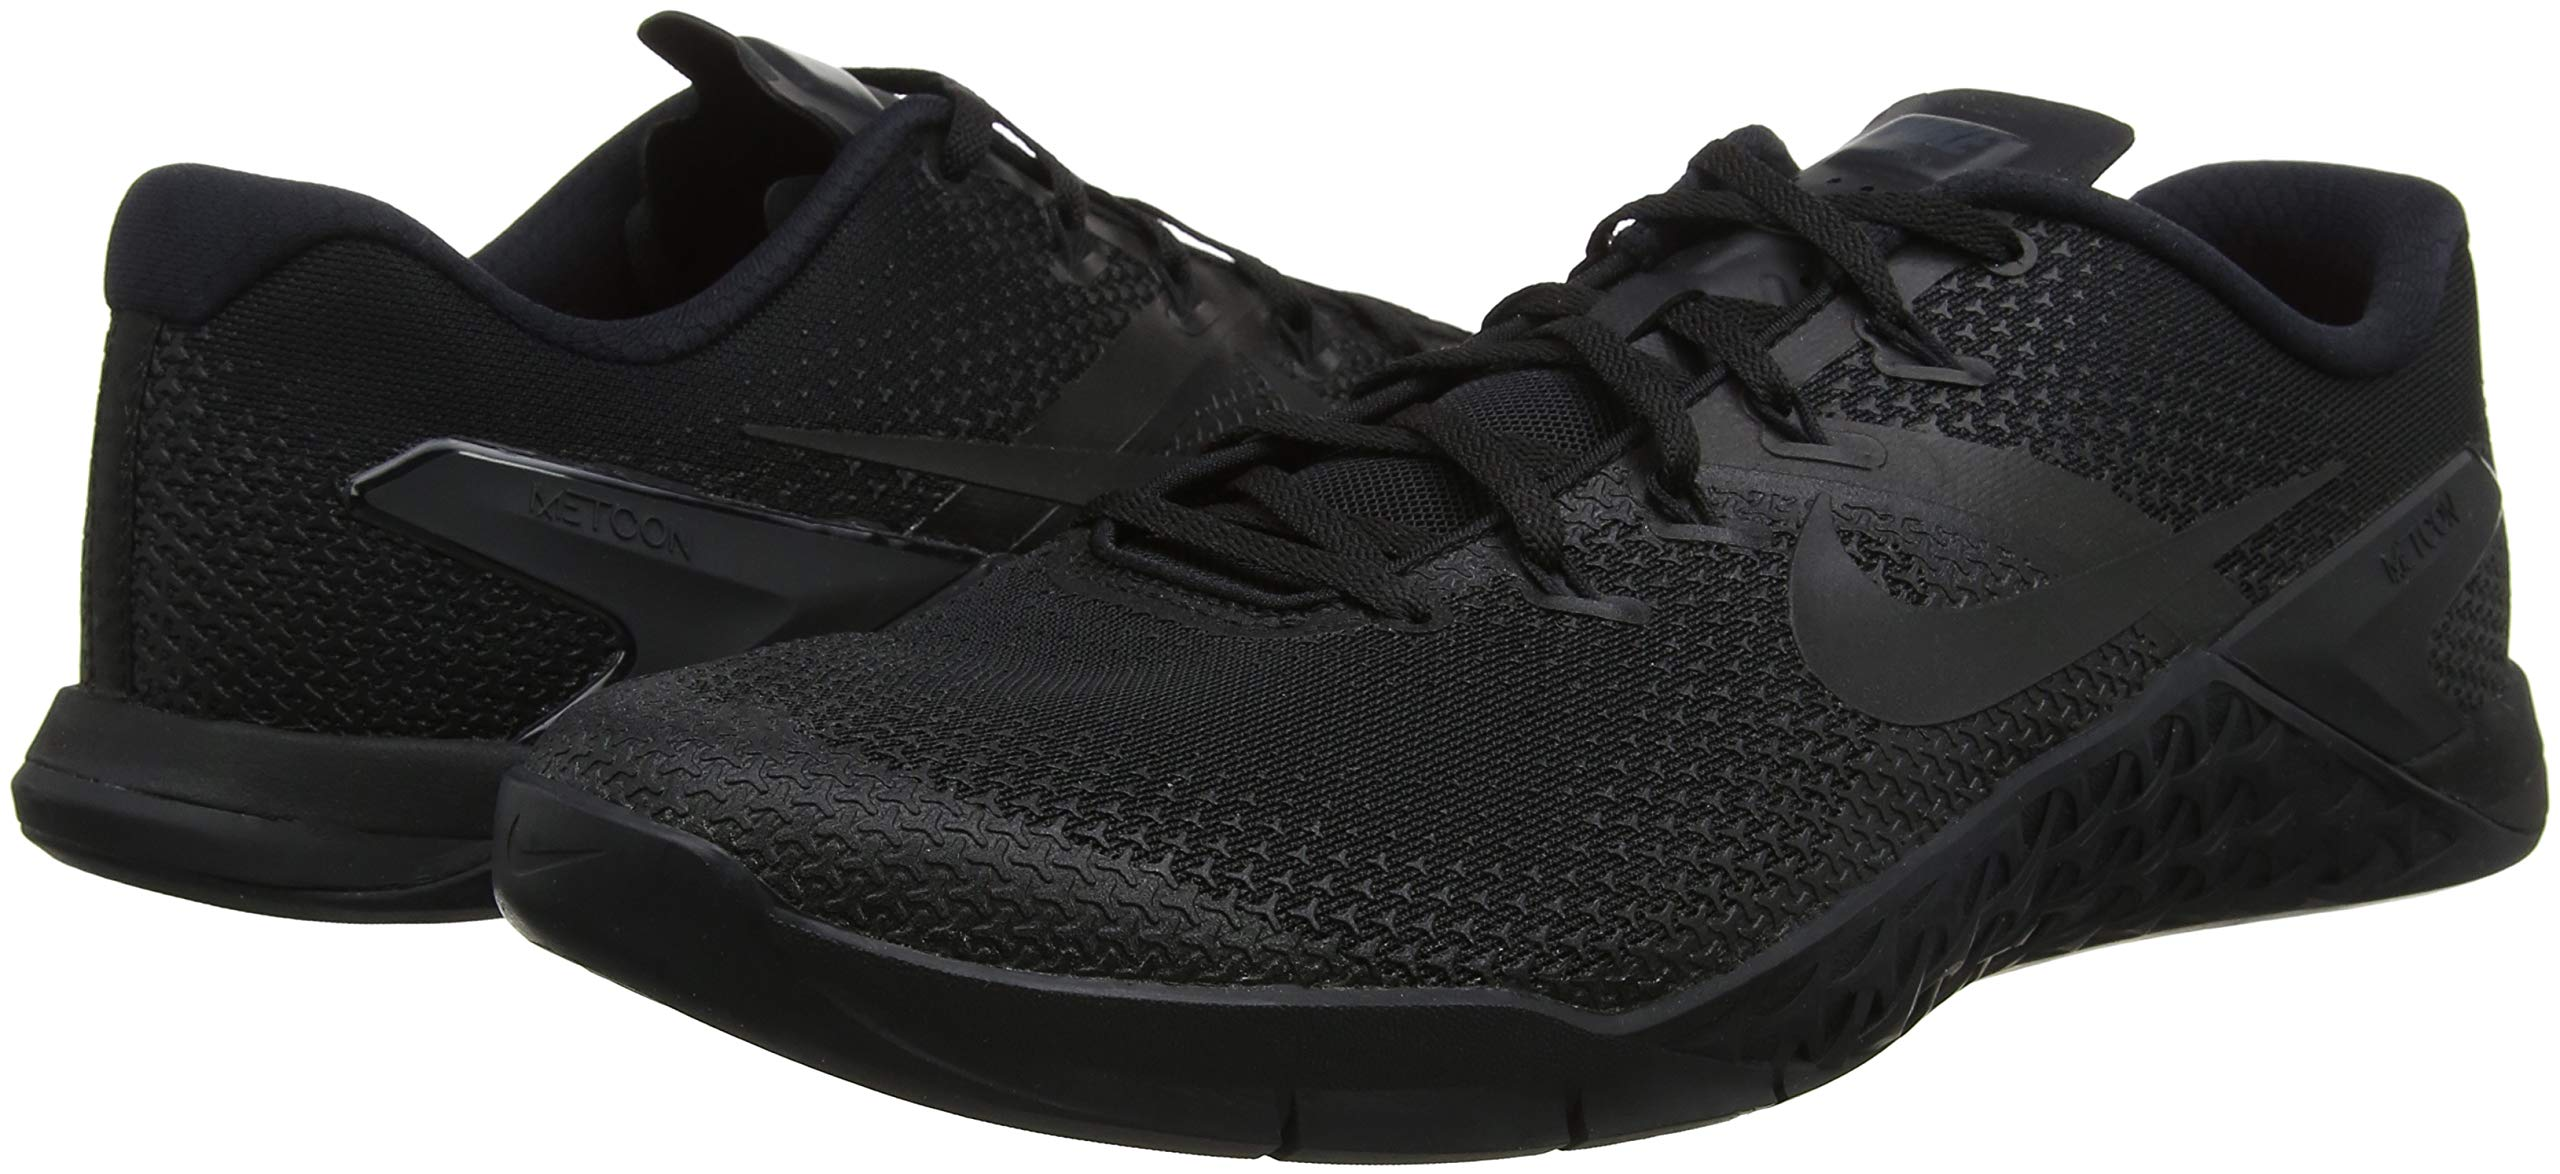 Nike Men's Metcon 4 Training Shoe Black/Black-Black-Hyper Crimson 7.0 by Nike (Image #5)